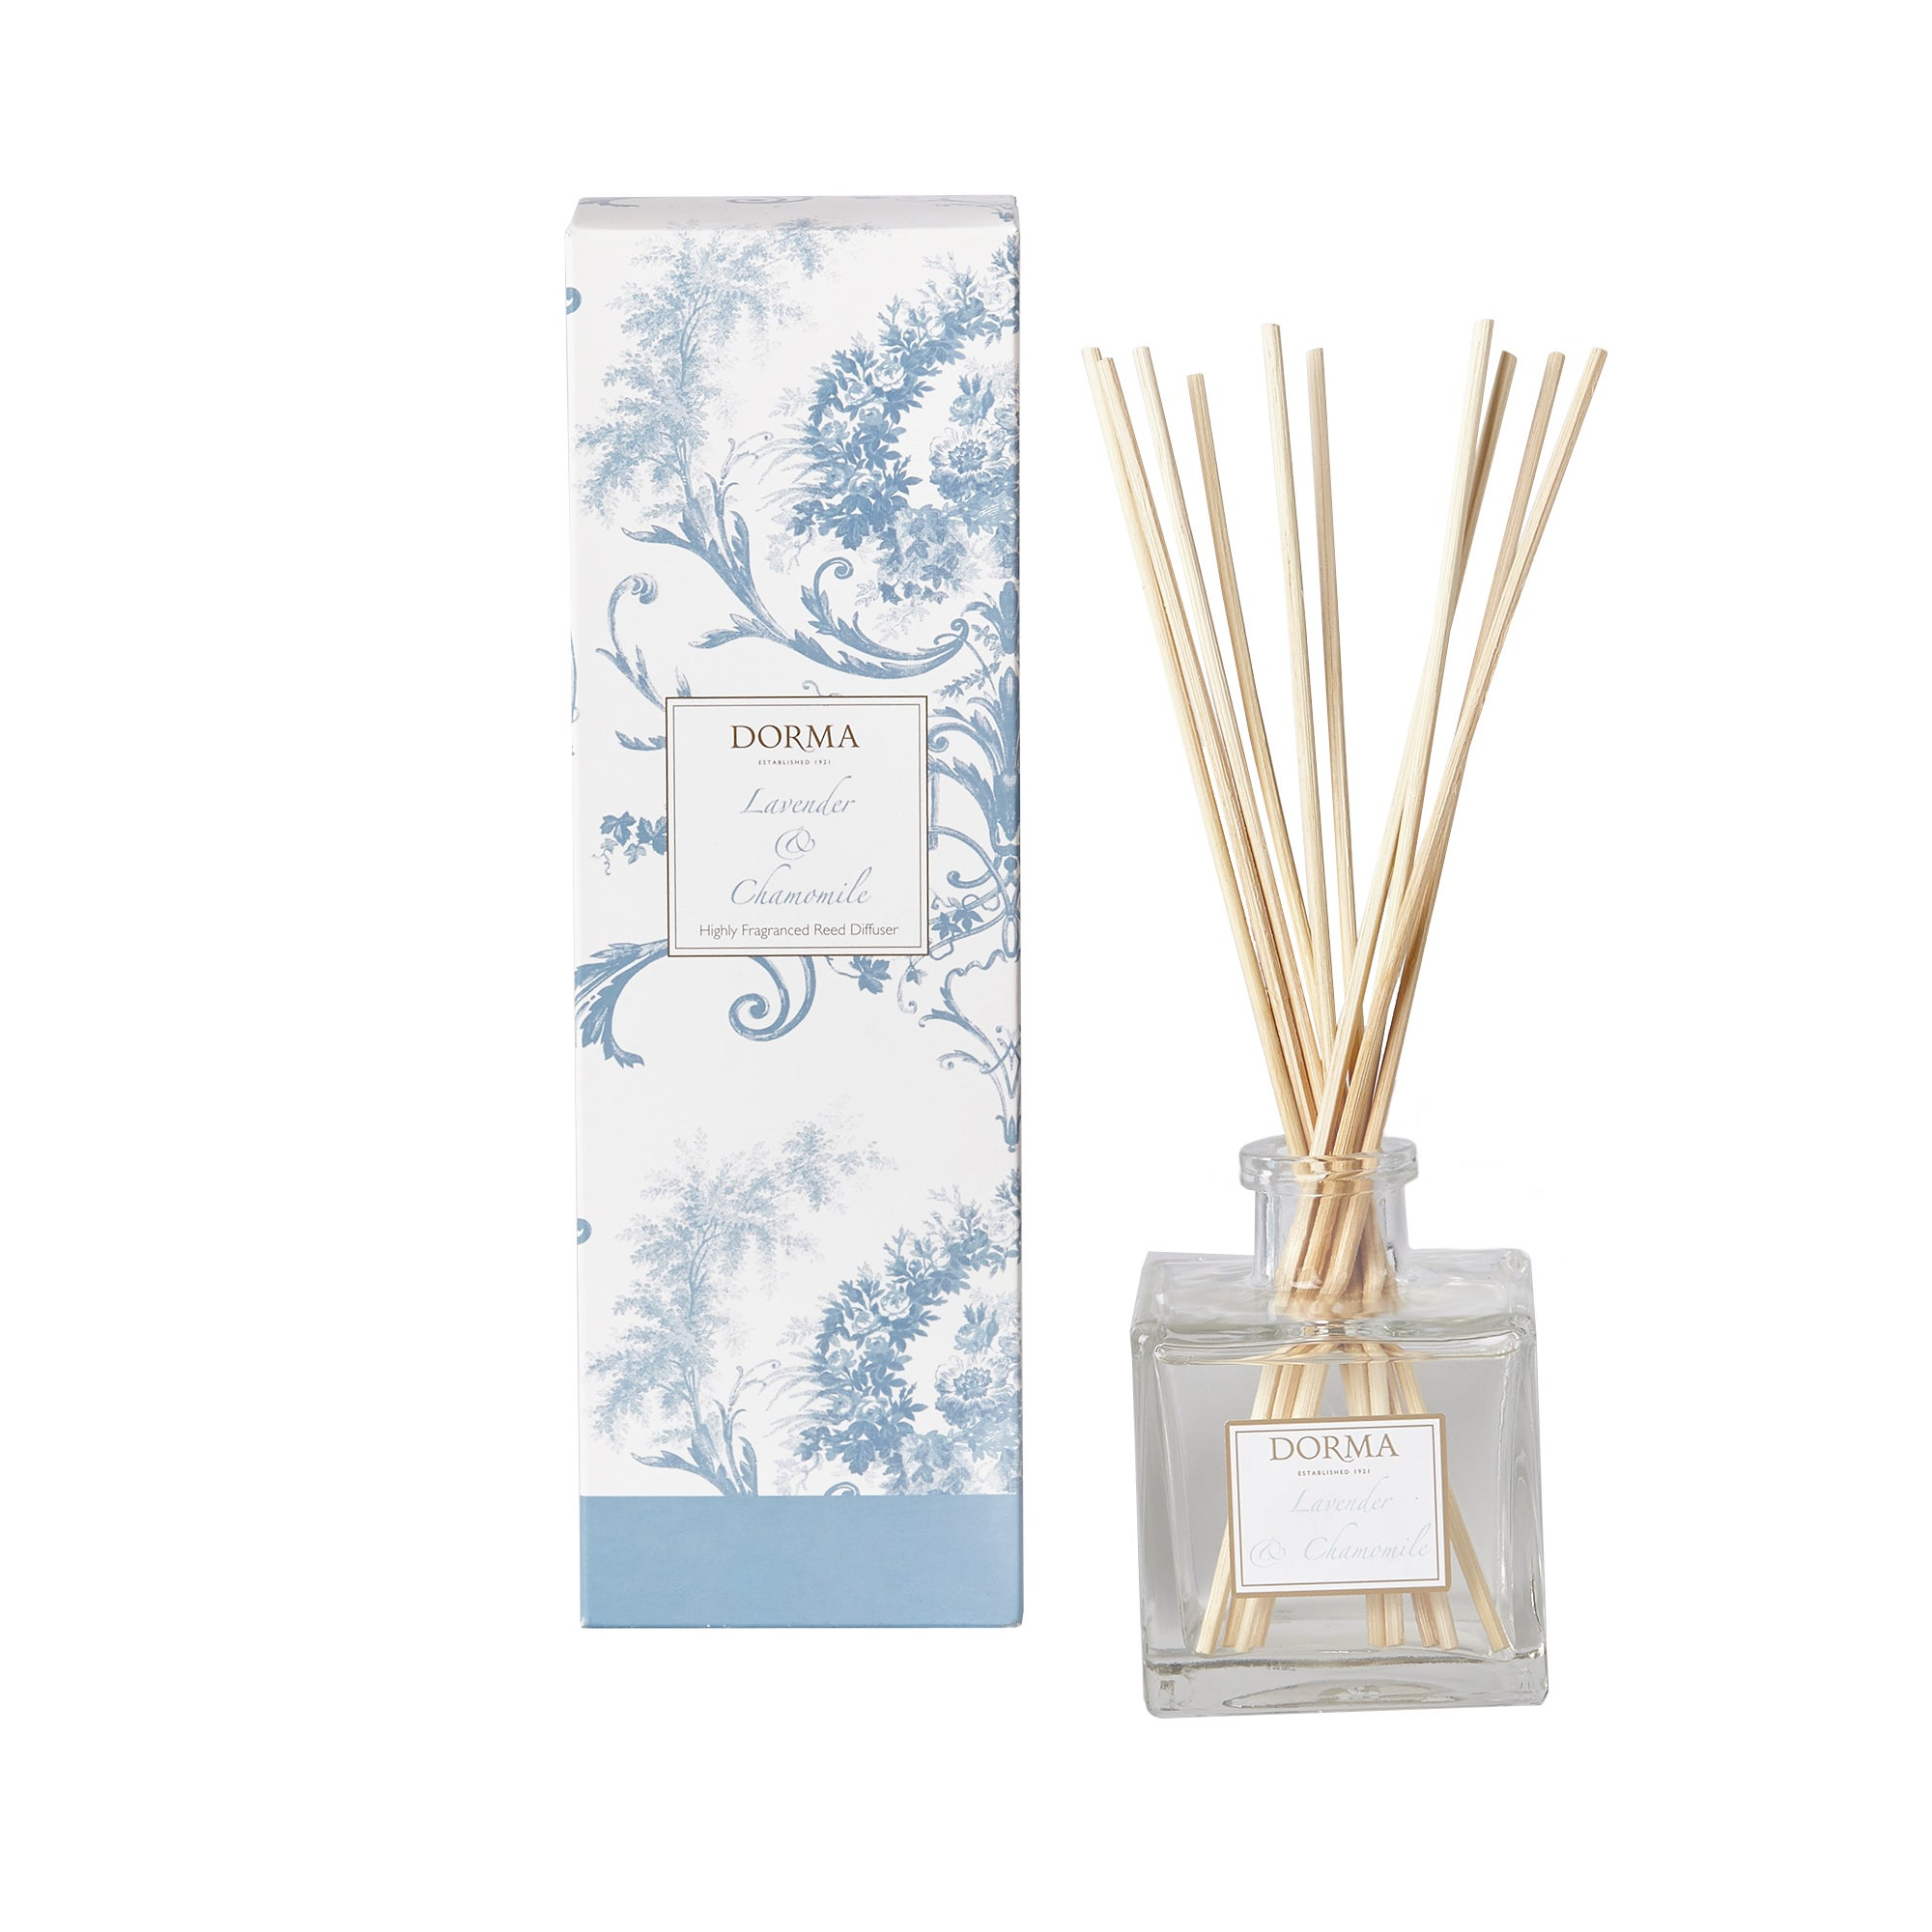 Dorma Lavender and Chamomile 200ml Reed Diffuser